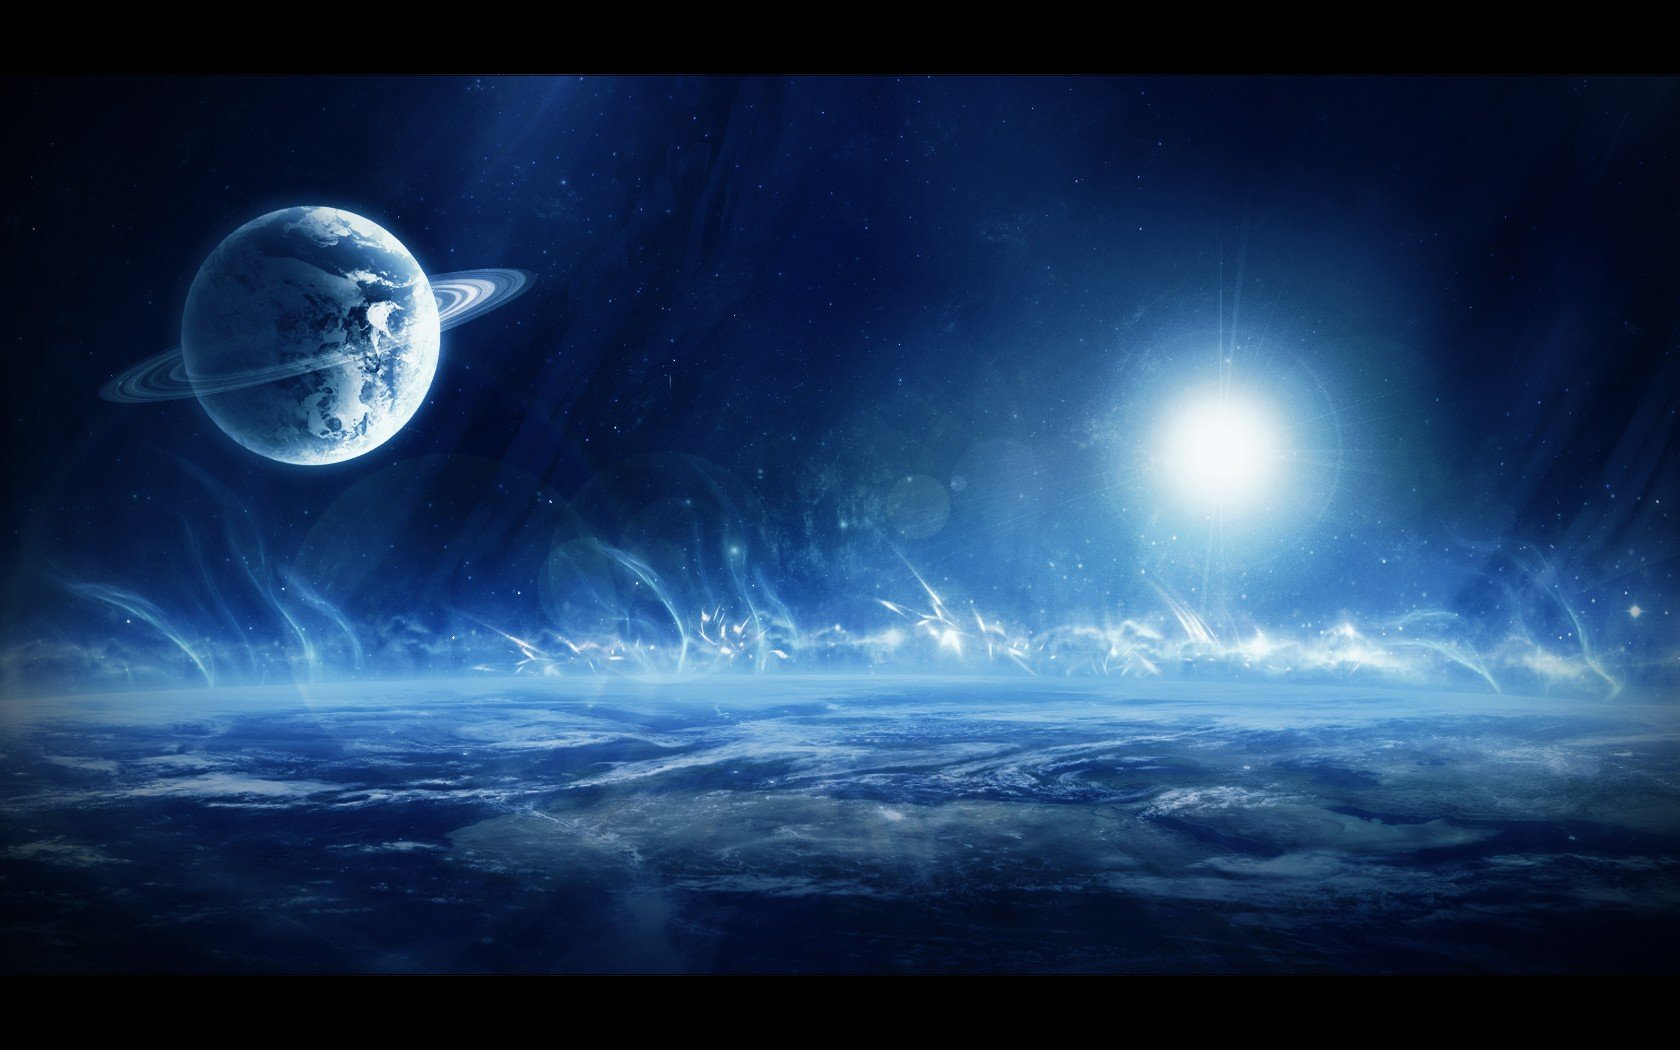 Outer Space Planets Wallpaper Outer space wa 1680x1050